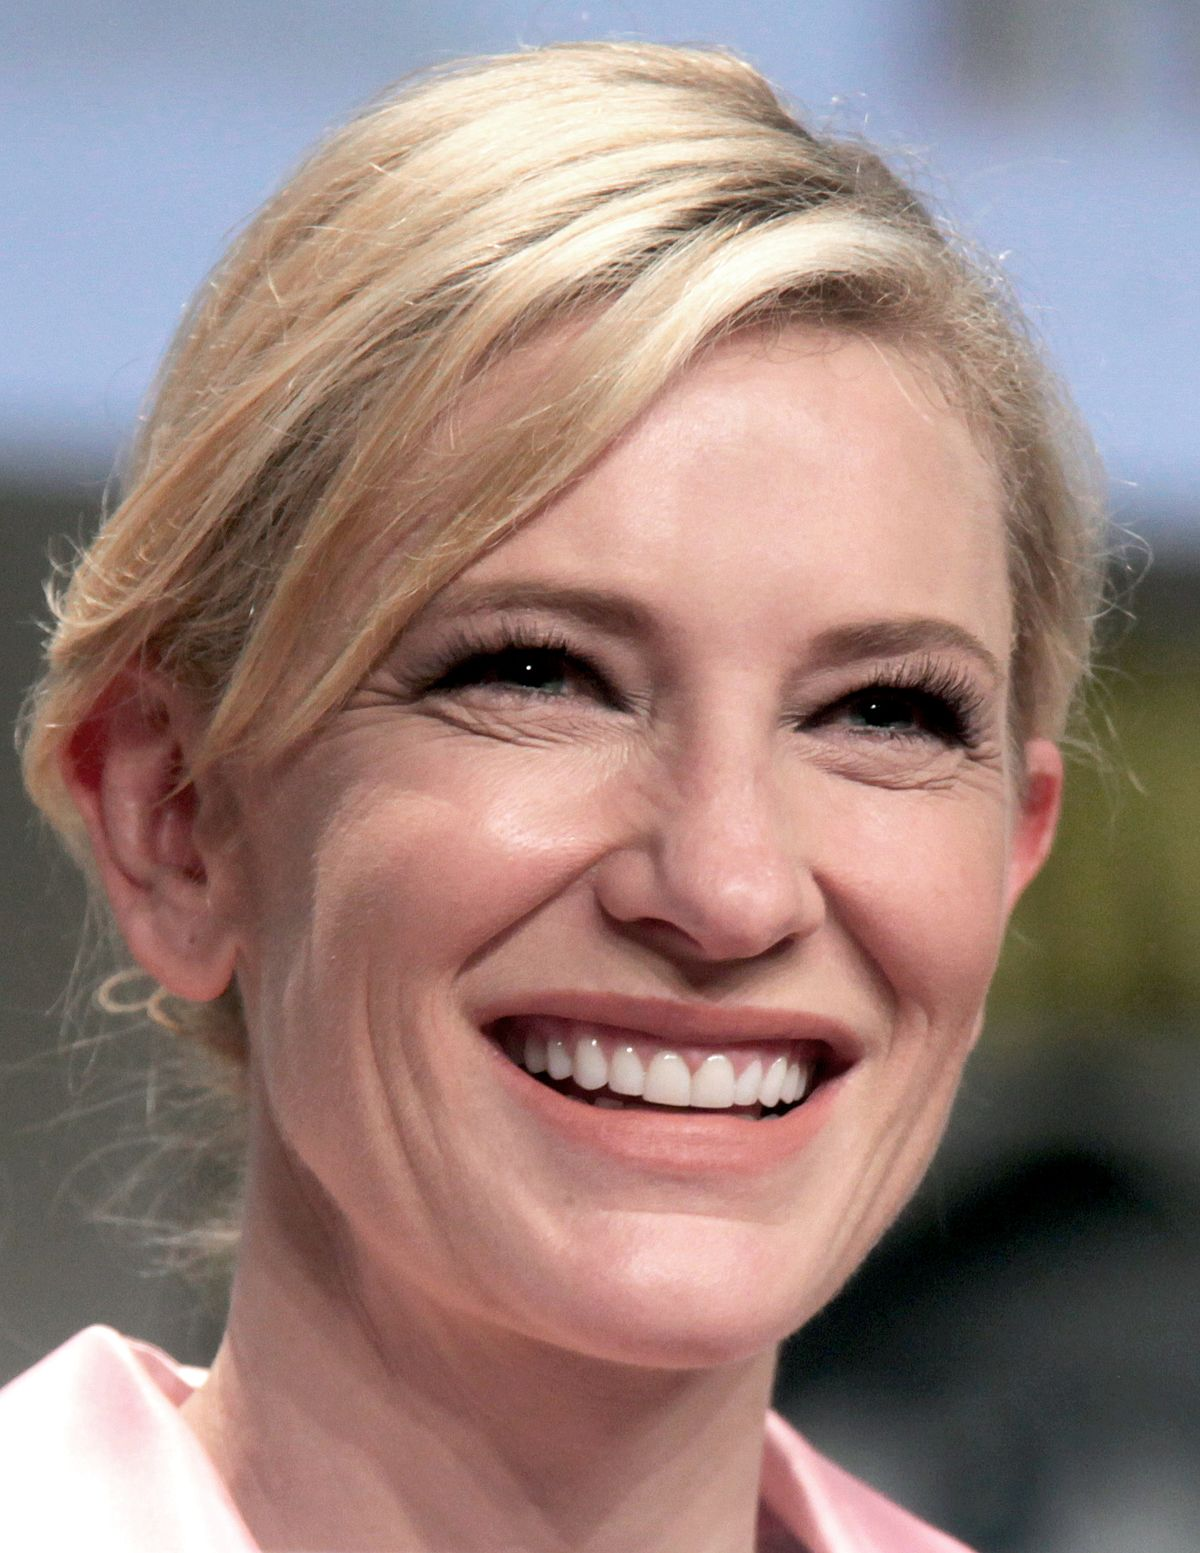 cate blanchett - photo #4